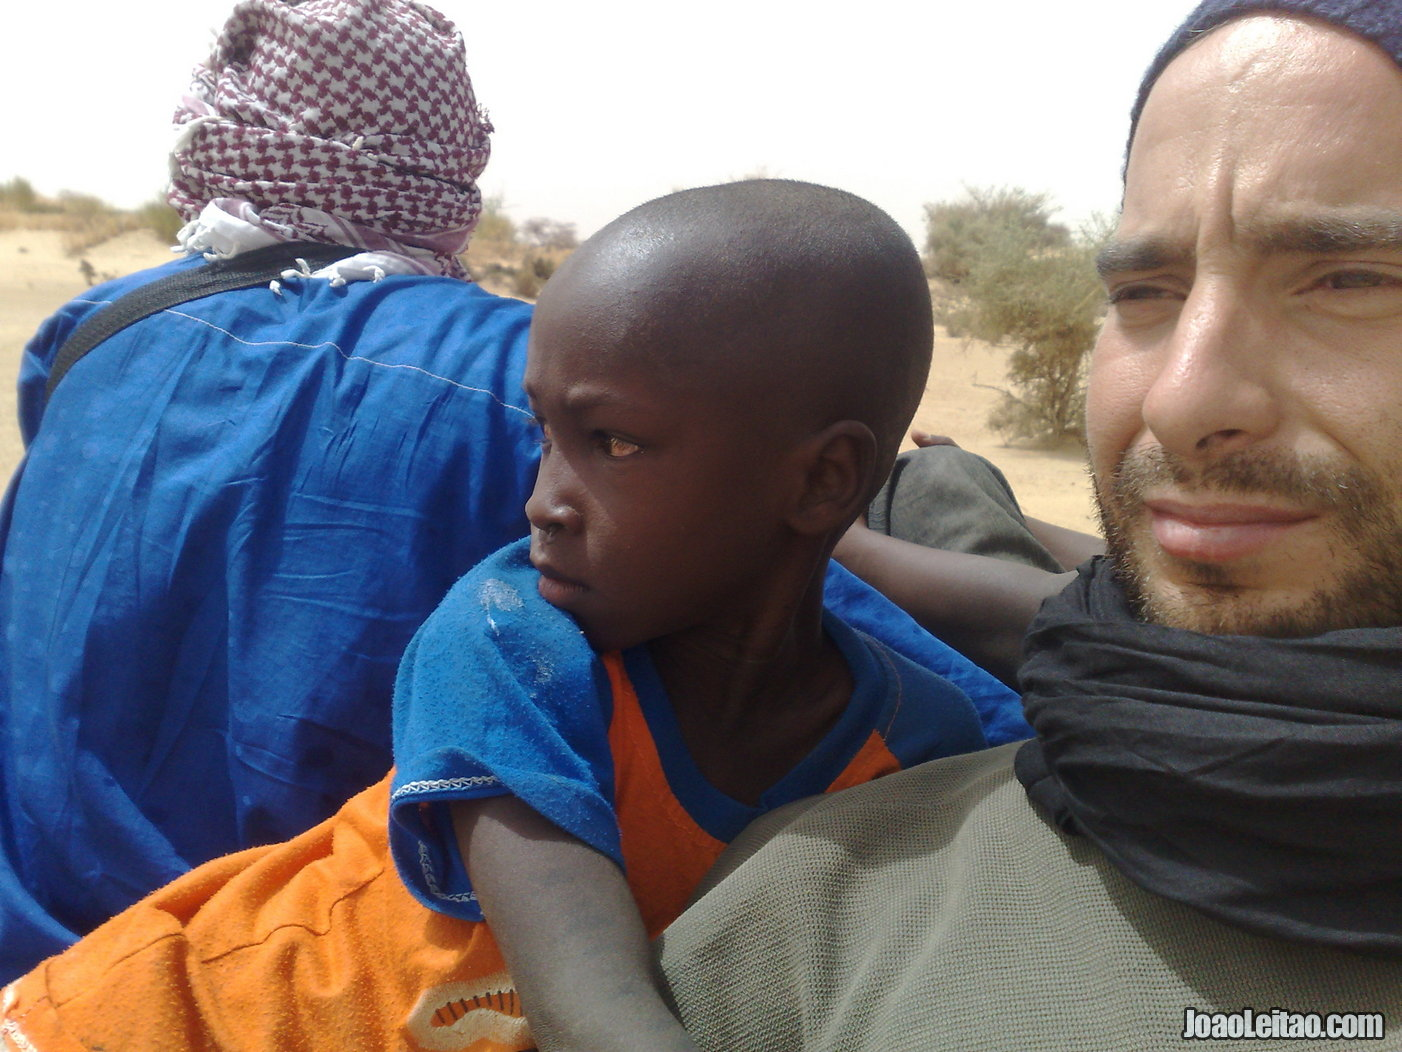 MY NEW FRIEND ON THE WAY TO TIMBUKTU IN NORTHERN MALI